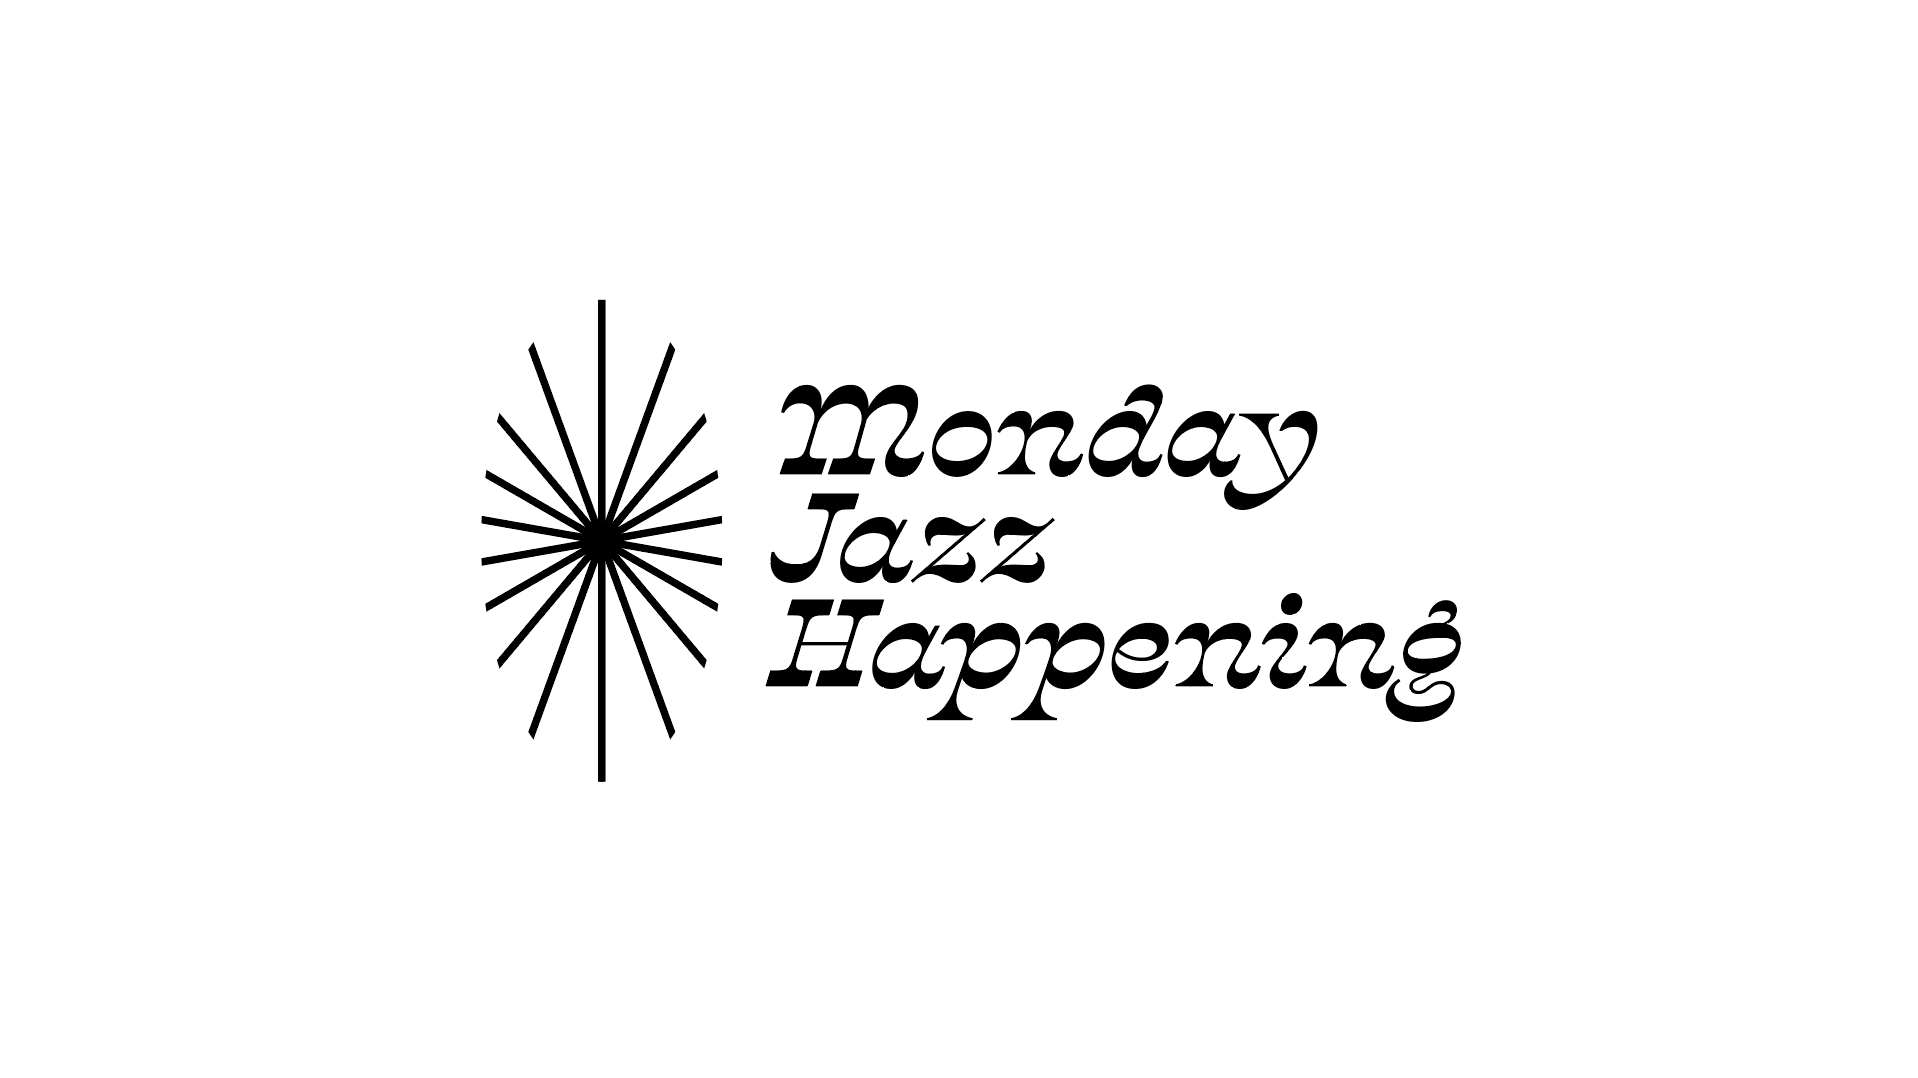 Monday Jazz Happeningin logo.